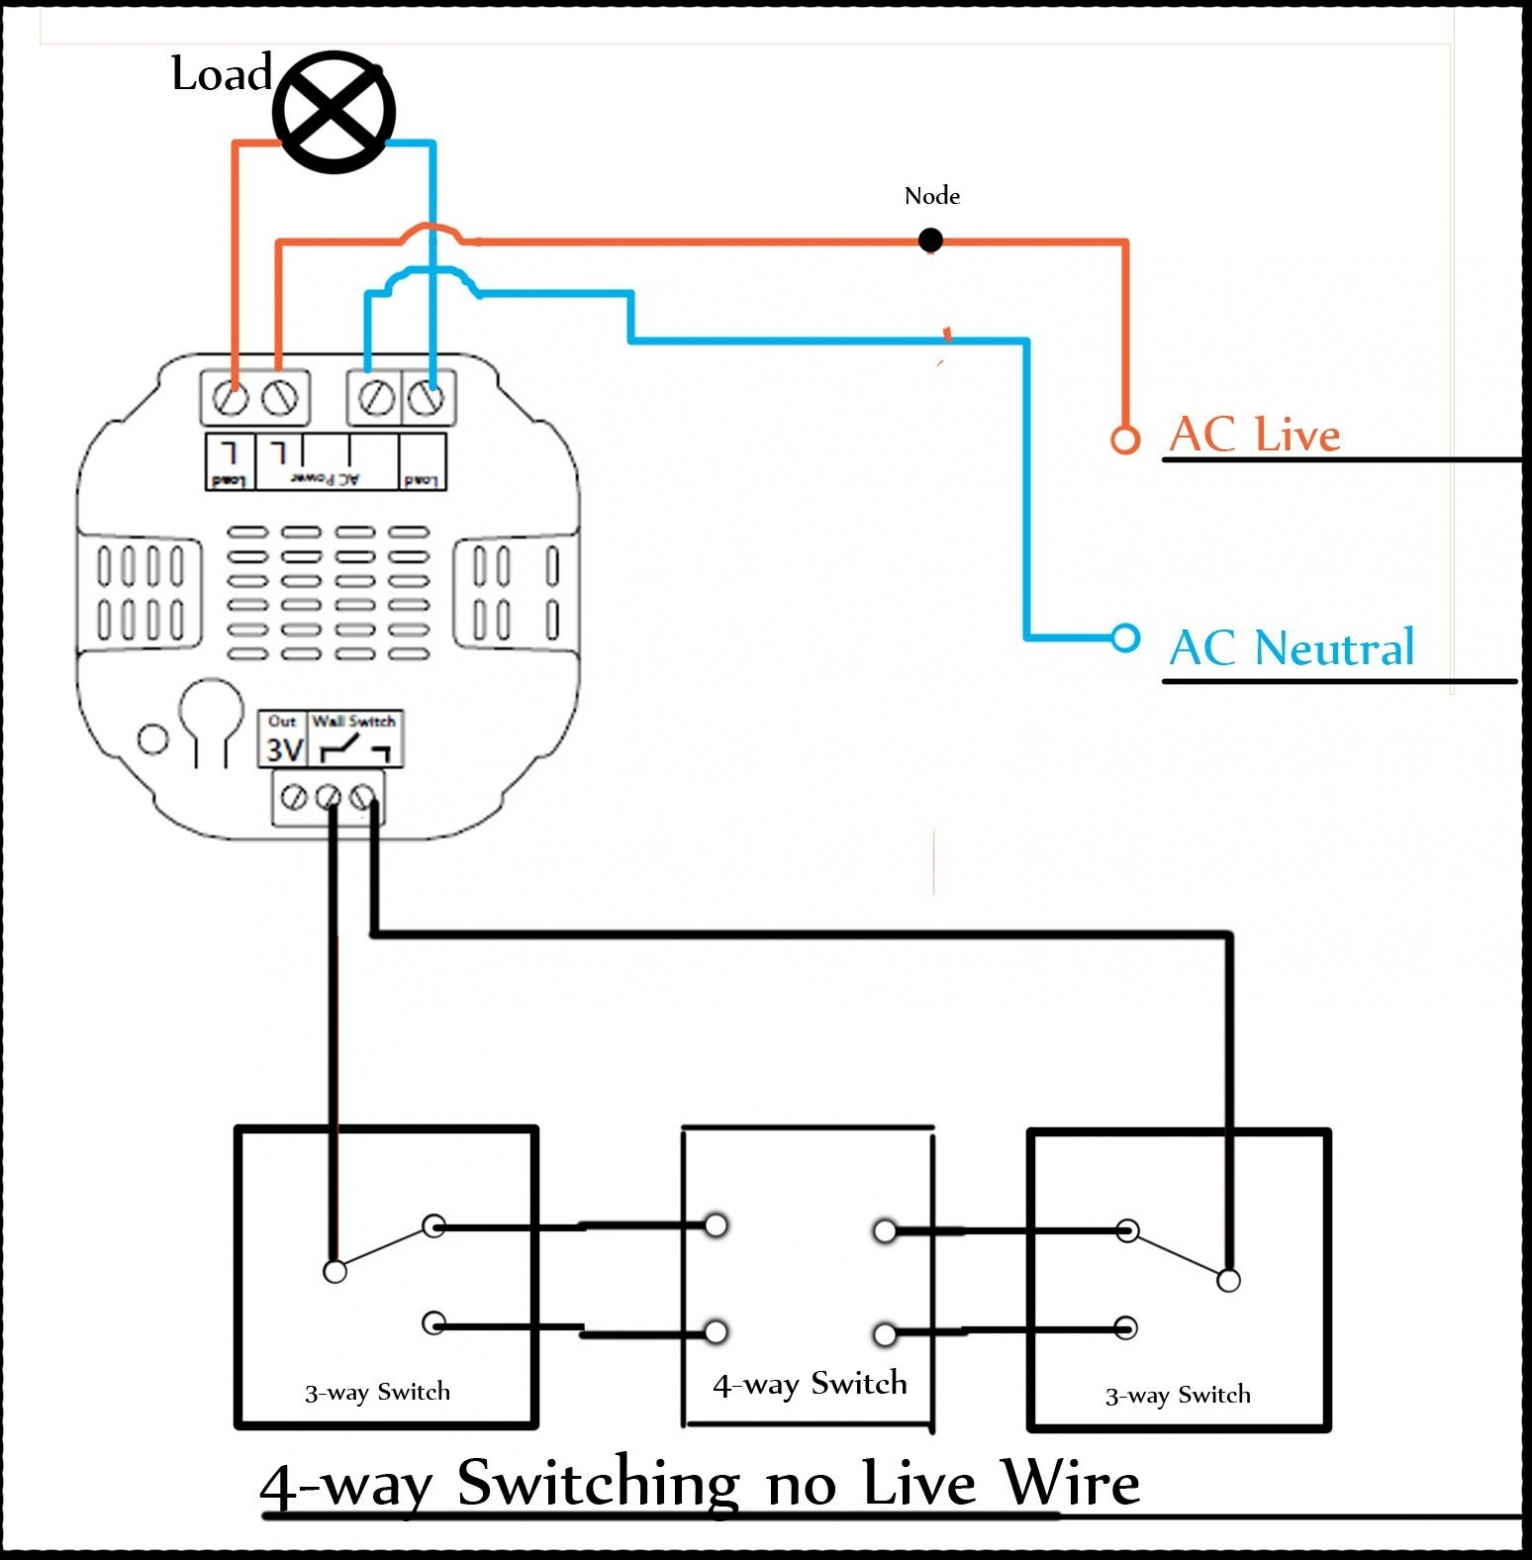 Wiring Diagram For 1 Way Dimmer Switch Save Dimm Switch Wiring - Dimming Switch Wiring Diagram